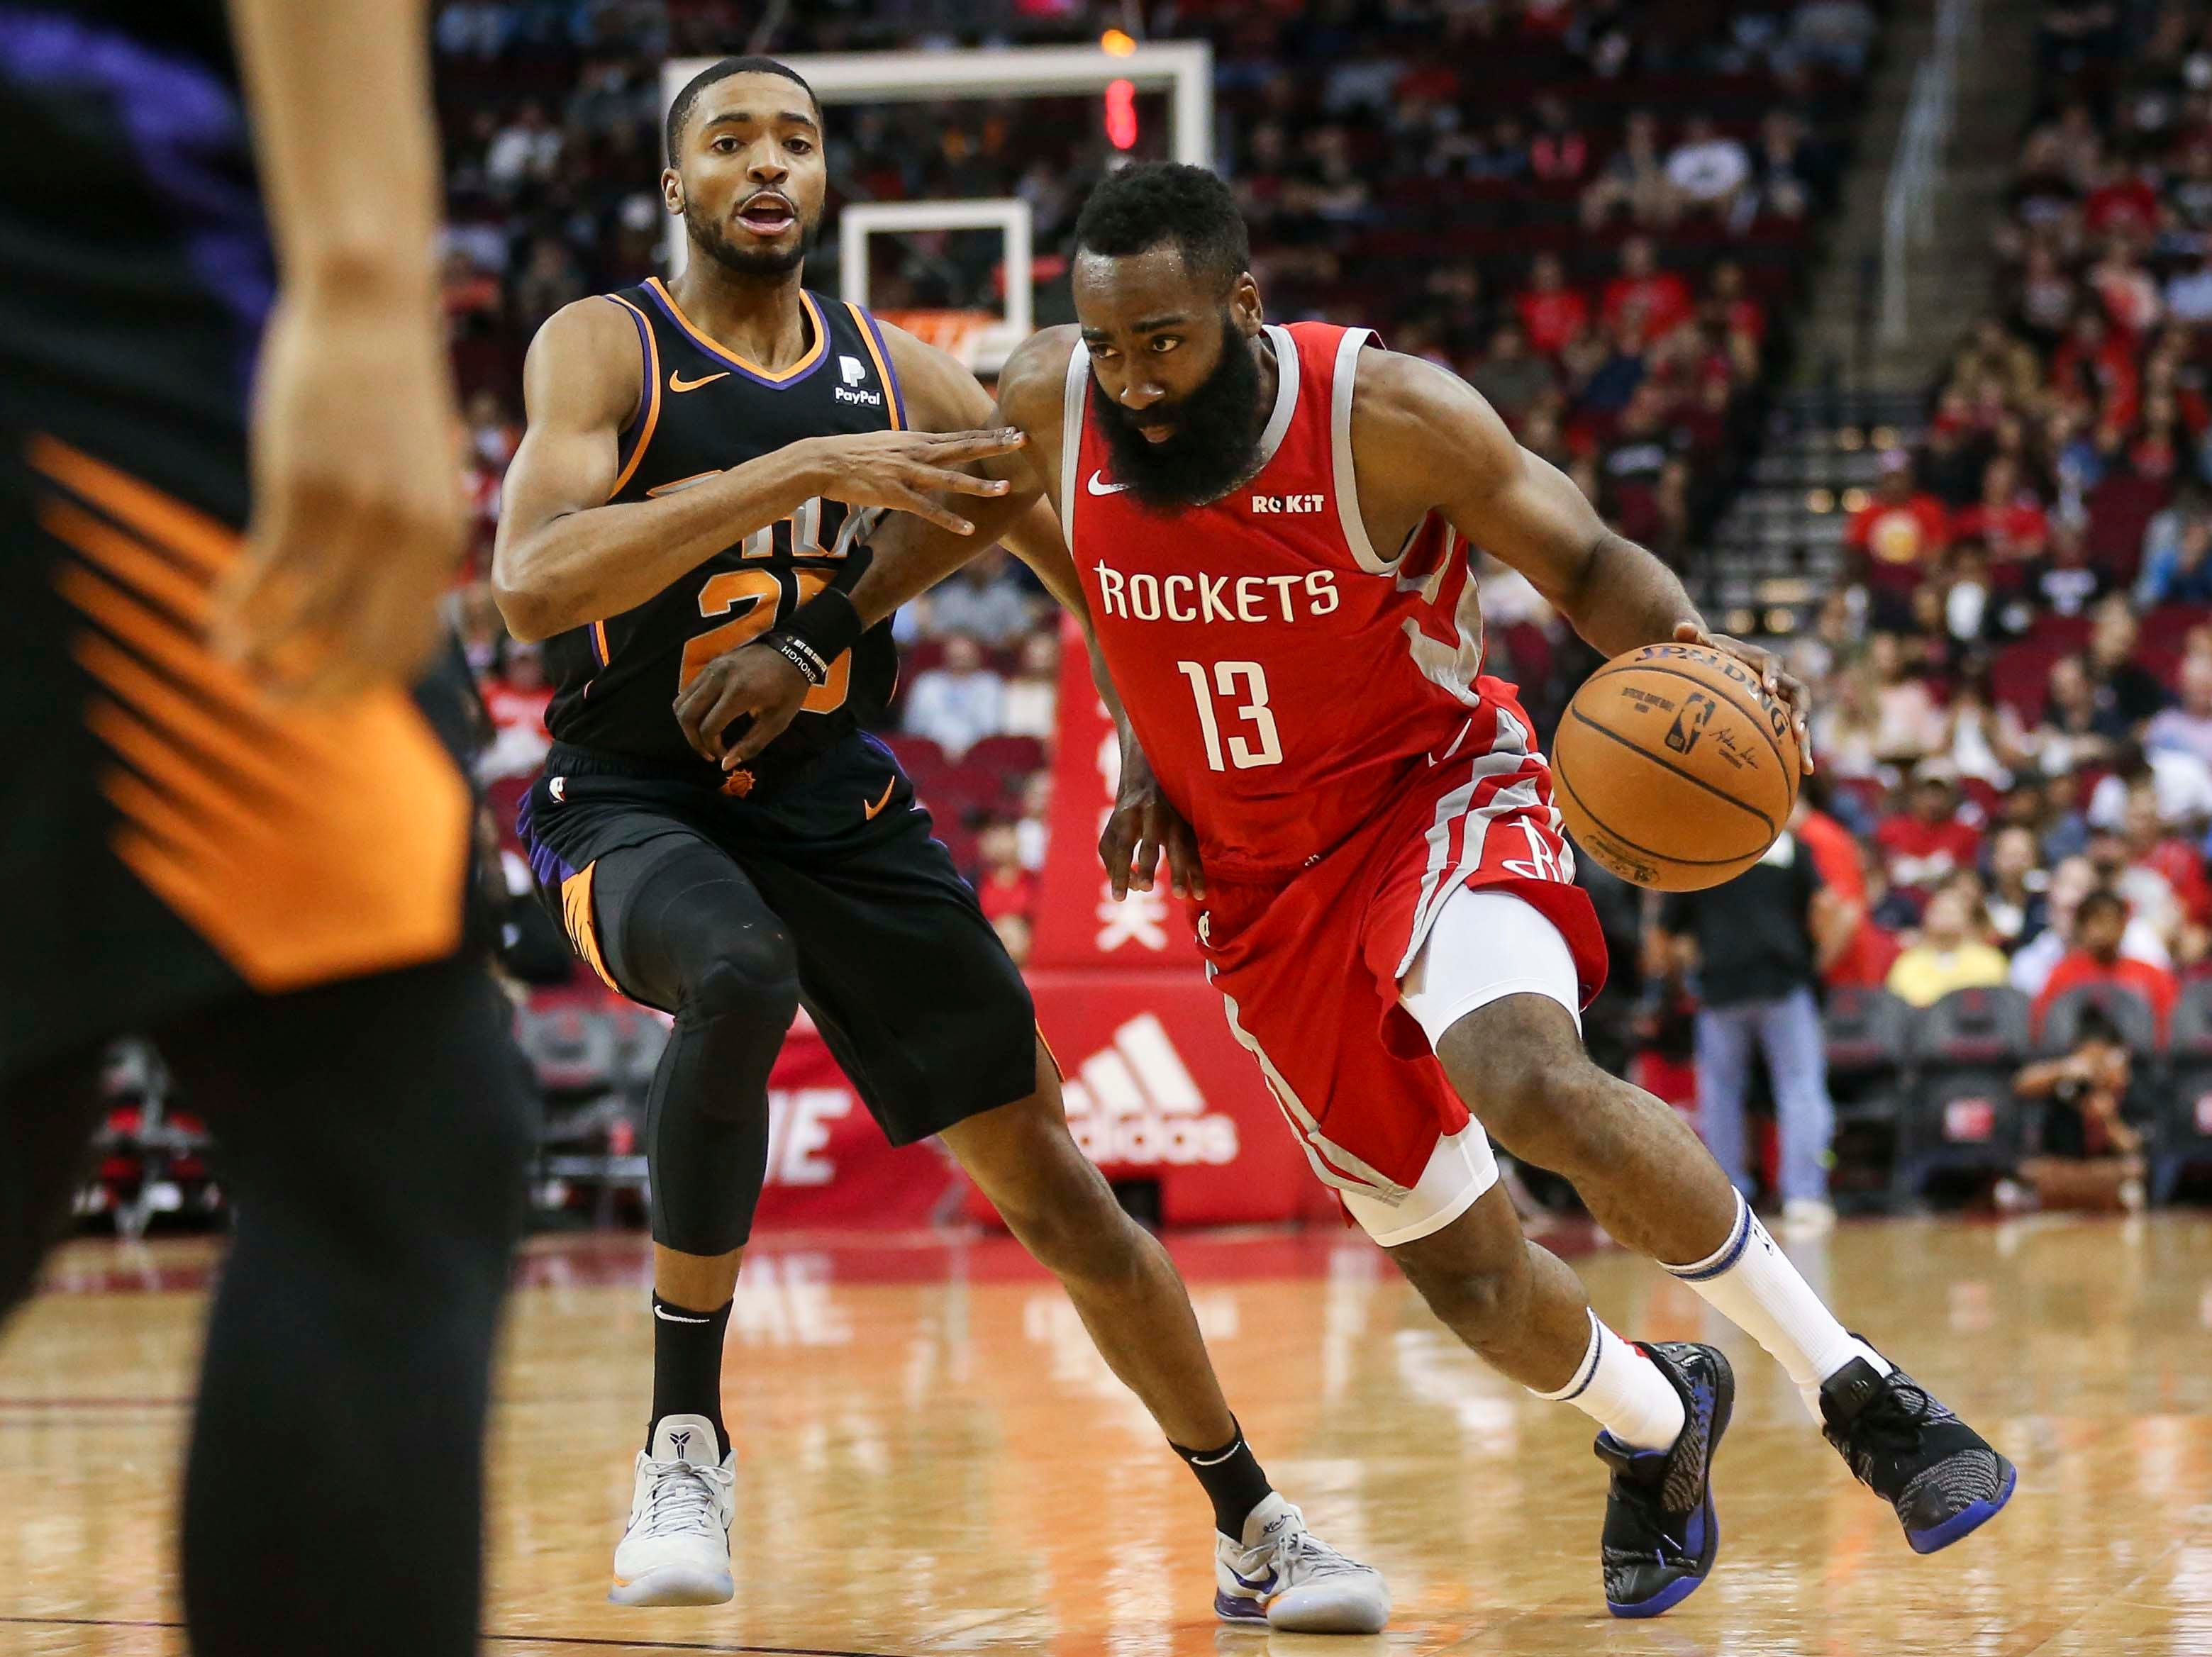 Apr 7, 2019; Houston, TX, USA; Houston Rockets guard James Harden (13) dribbles the ball as Phoenix Suns forward Mikal Bridges (25) defends during the first quarter at Toyota Center. Mandatory Credit: Troy Taormina-USA TODAY Sports